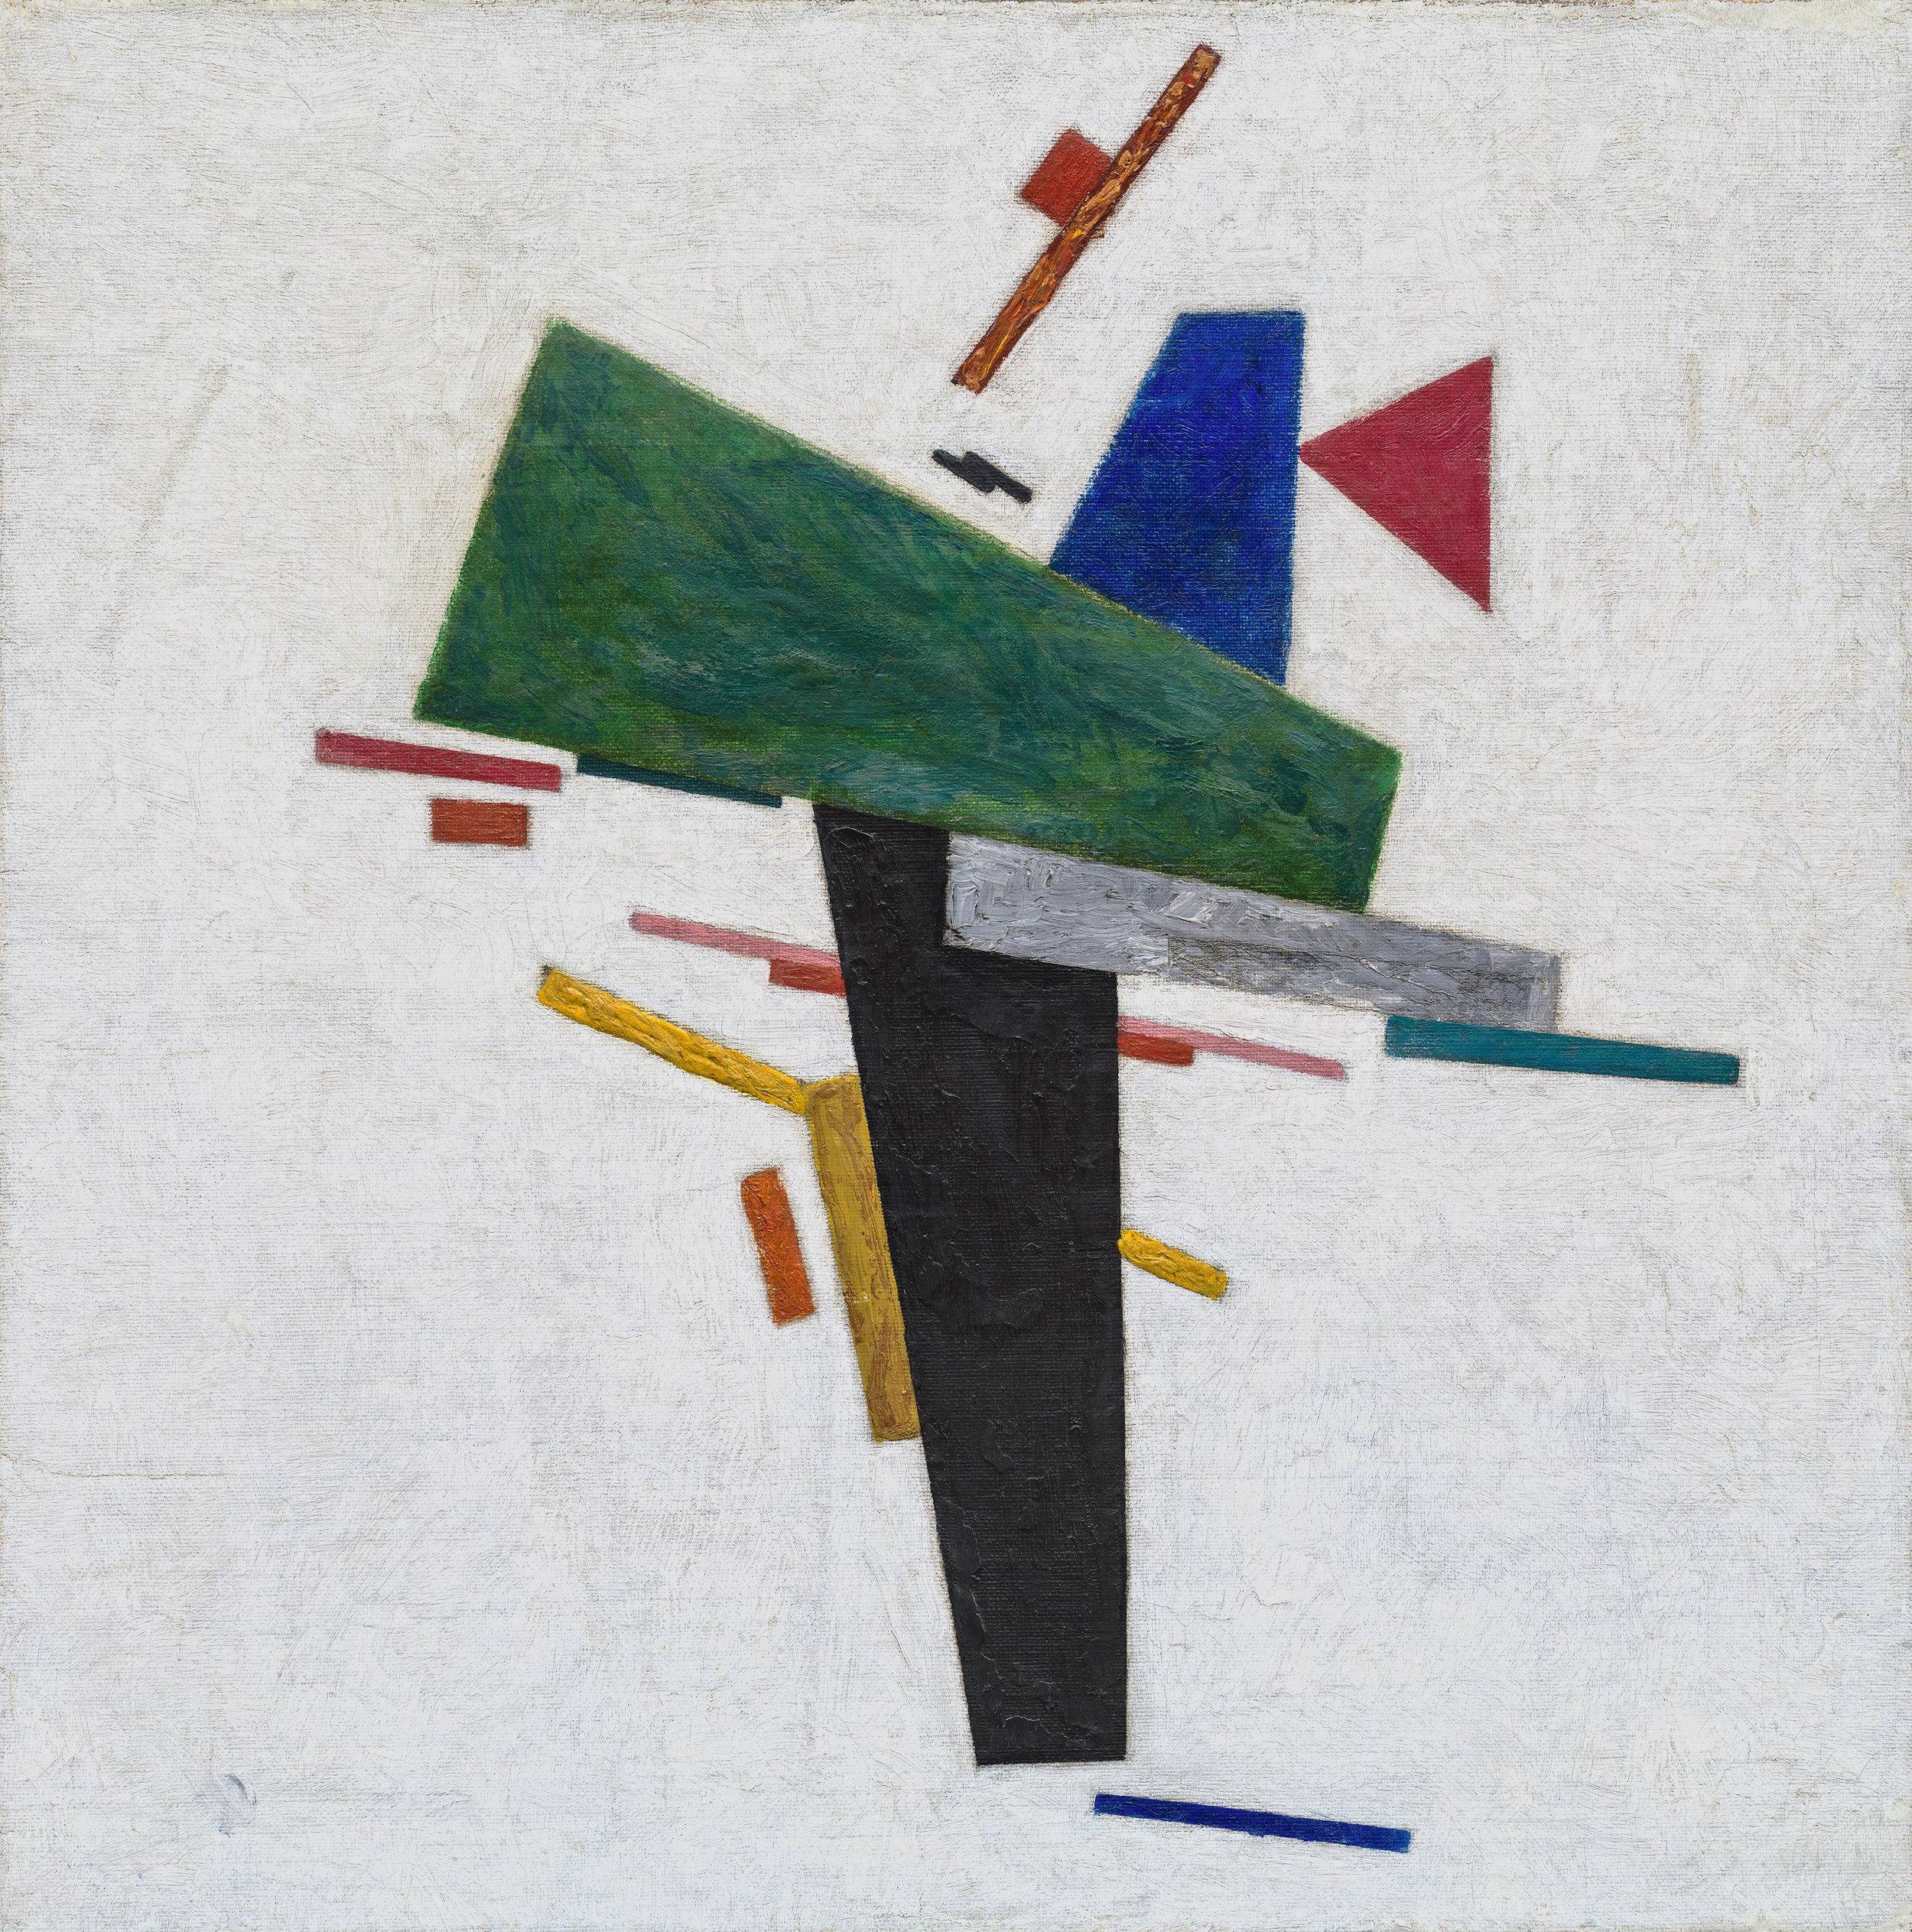 Untitled_(Malevich,_1916).jpg